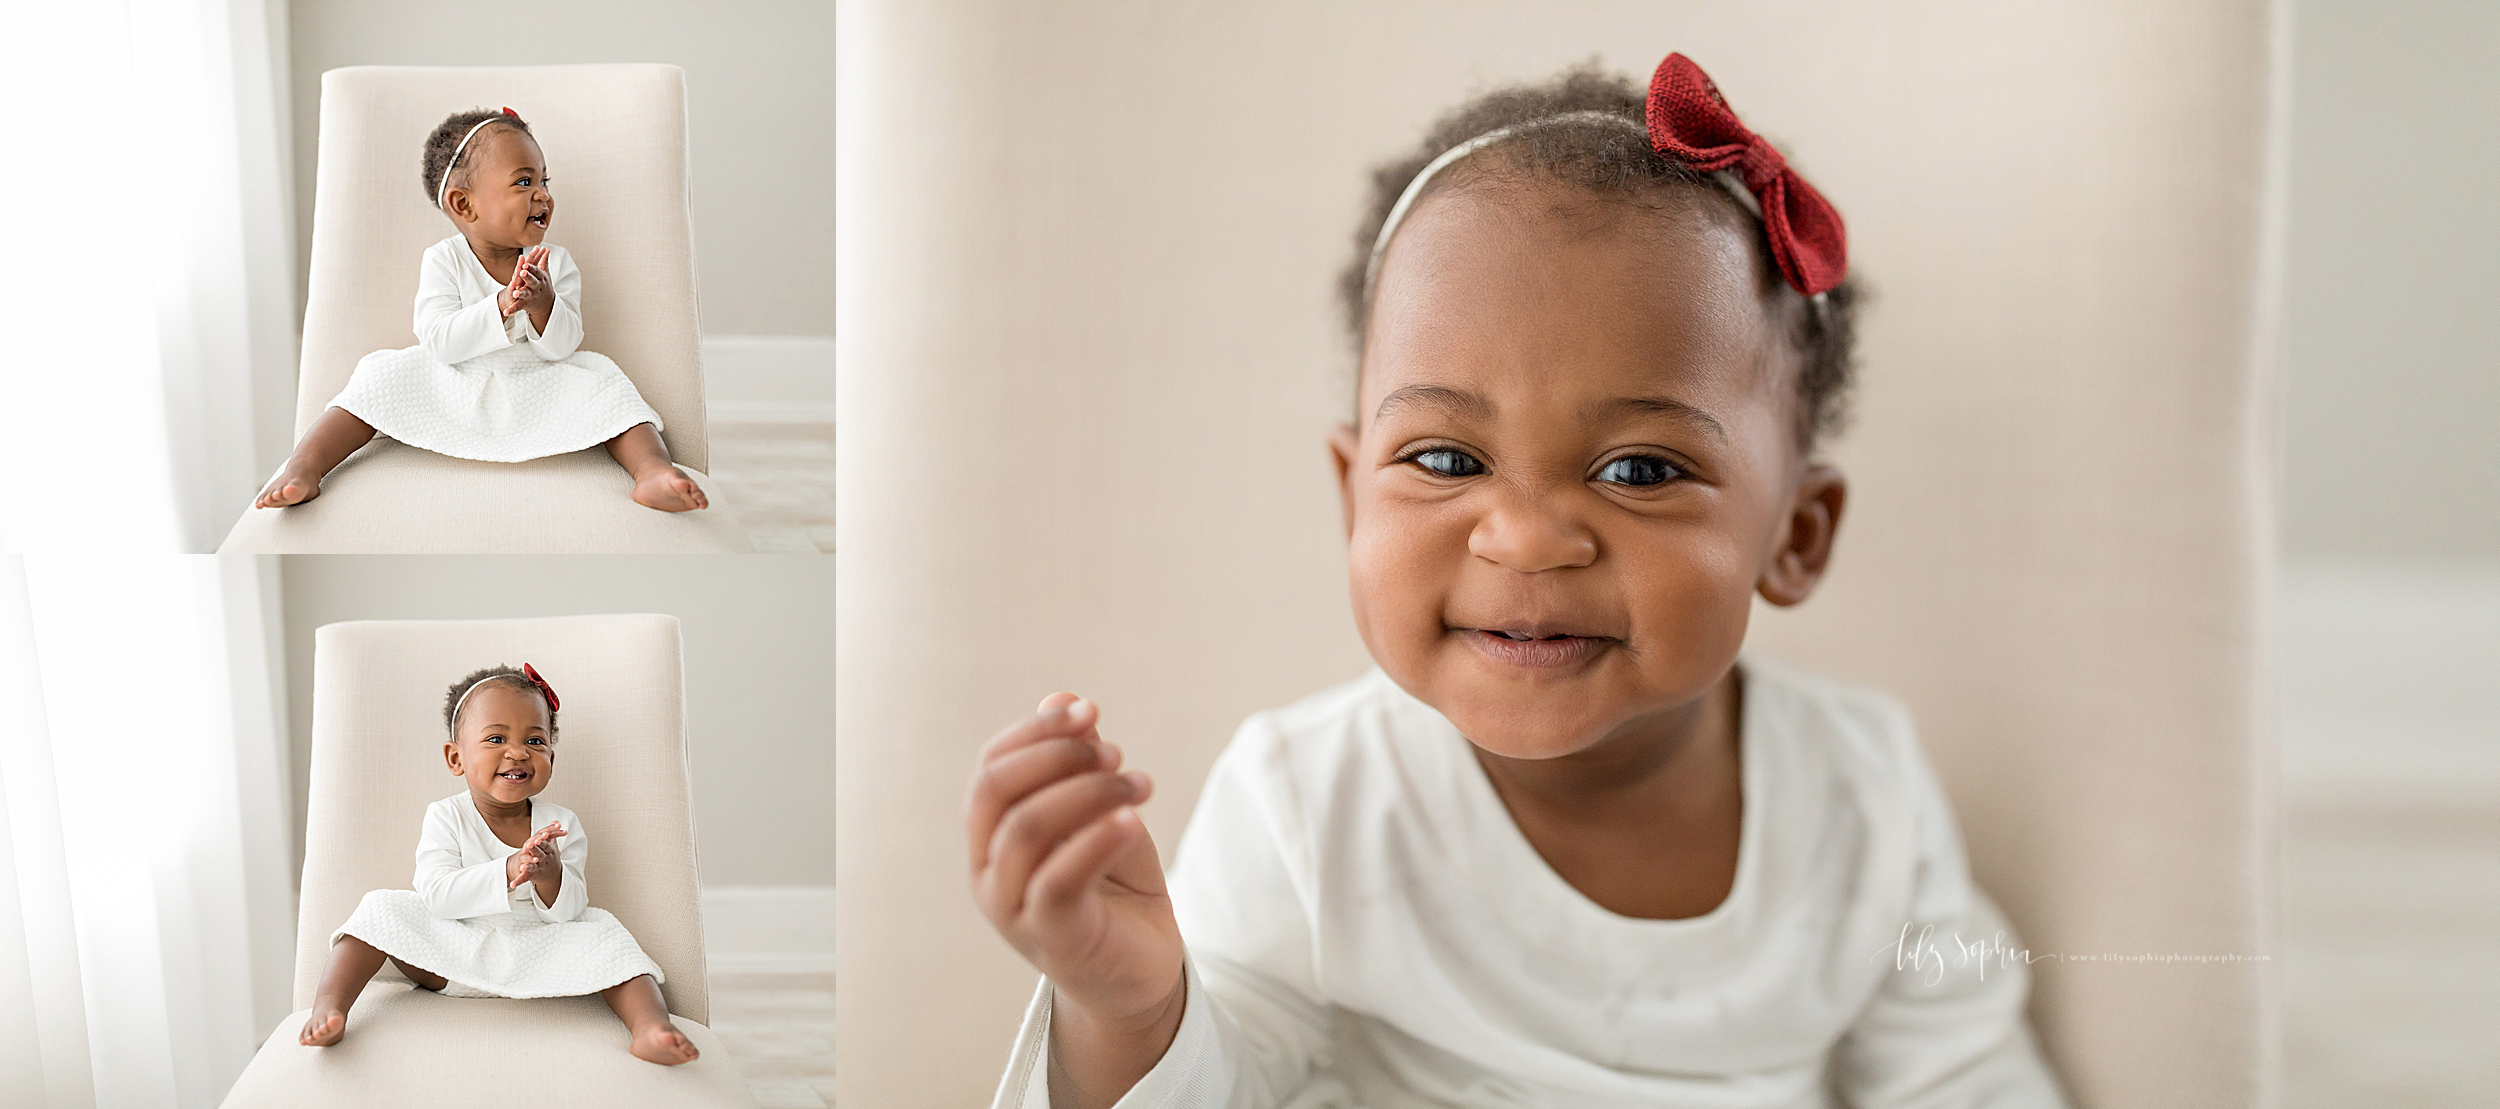 atlanta-smyrna-brookhaven-decatur-lily-sophia-photography-photographer-portraits-grant-park-intown-first-birthday-cake-smash-one-year-old-toddler-baby-girl_0011.jpg